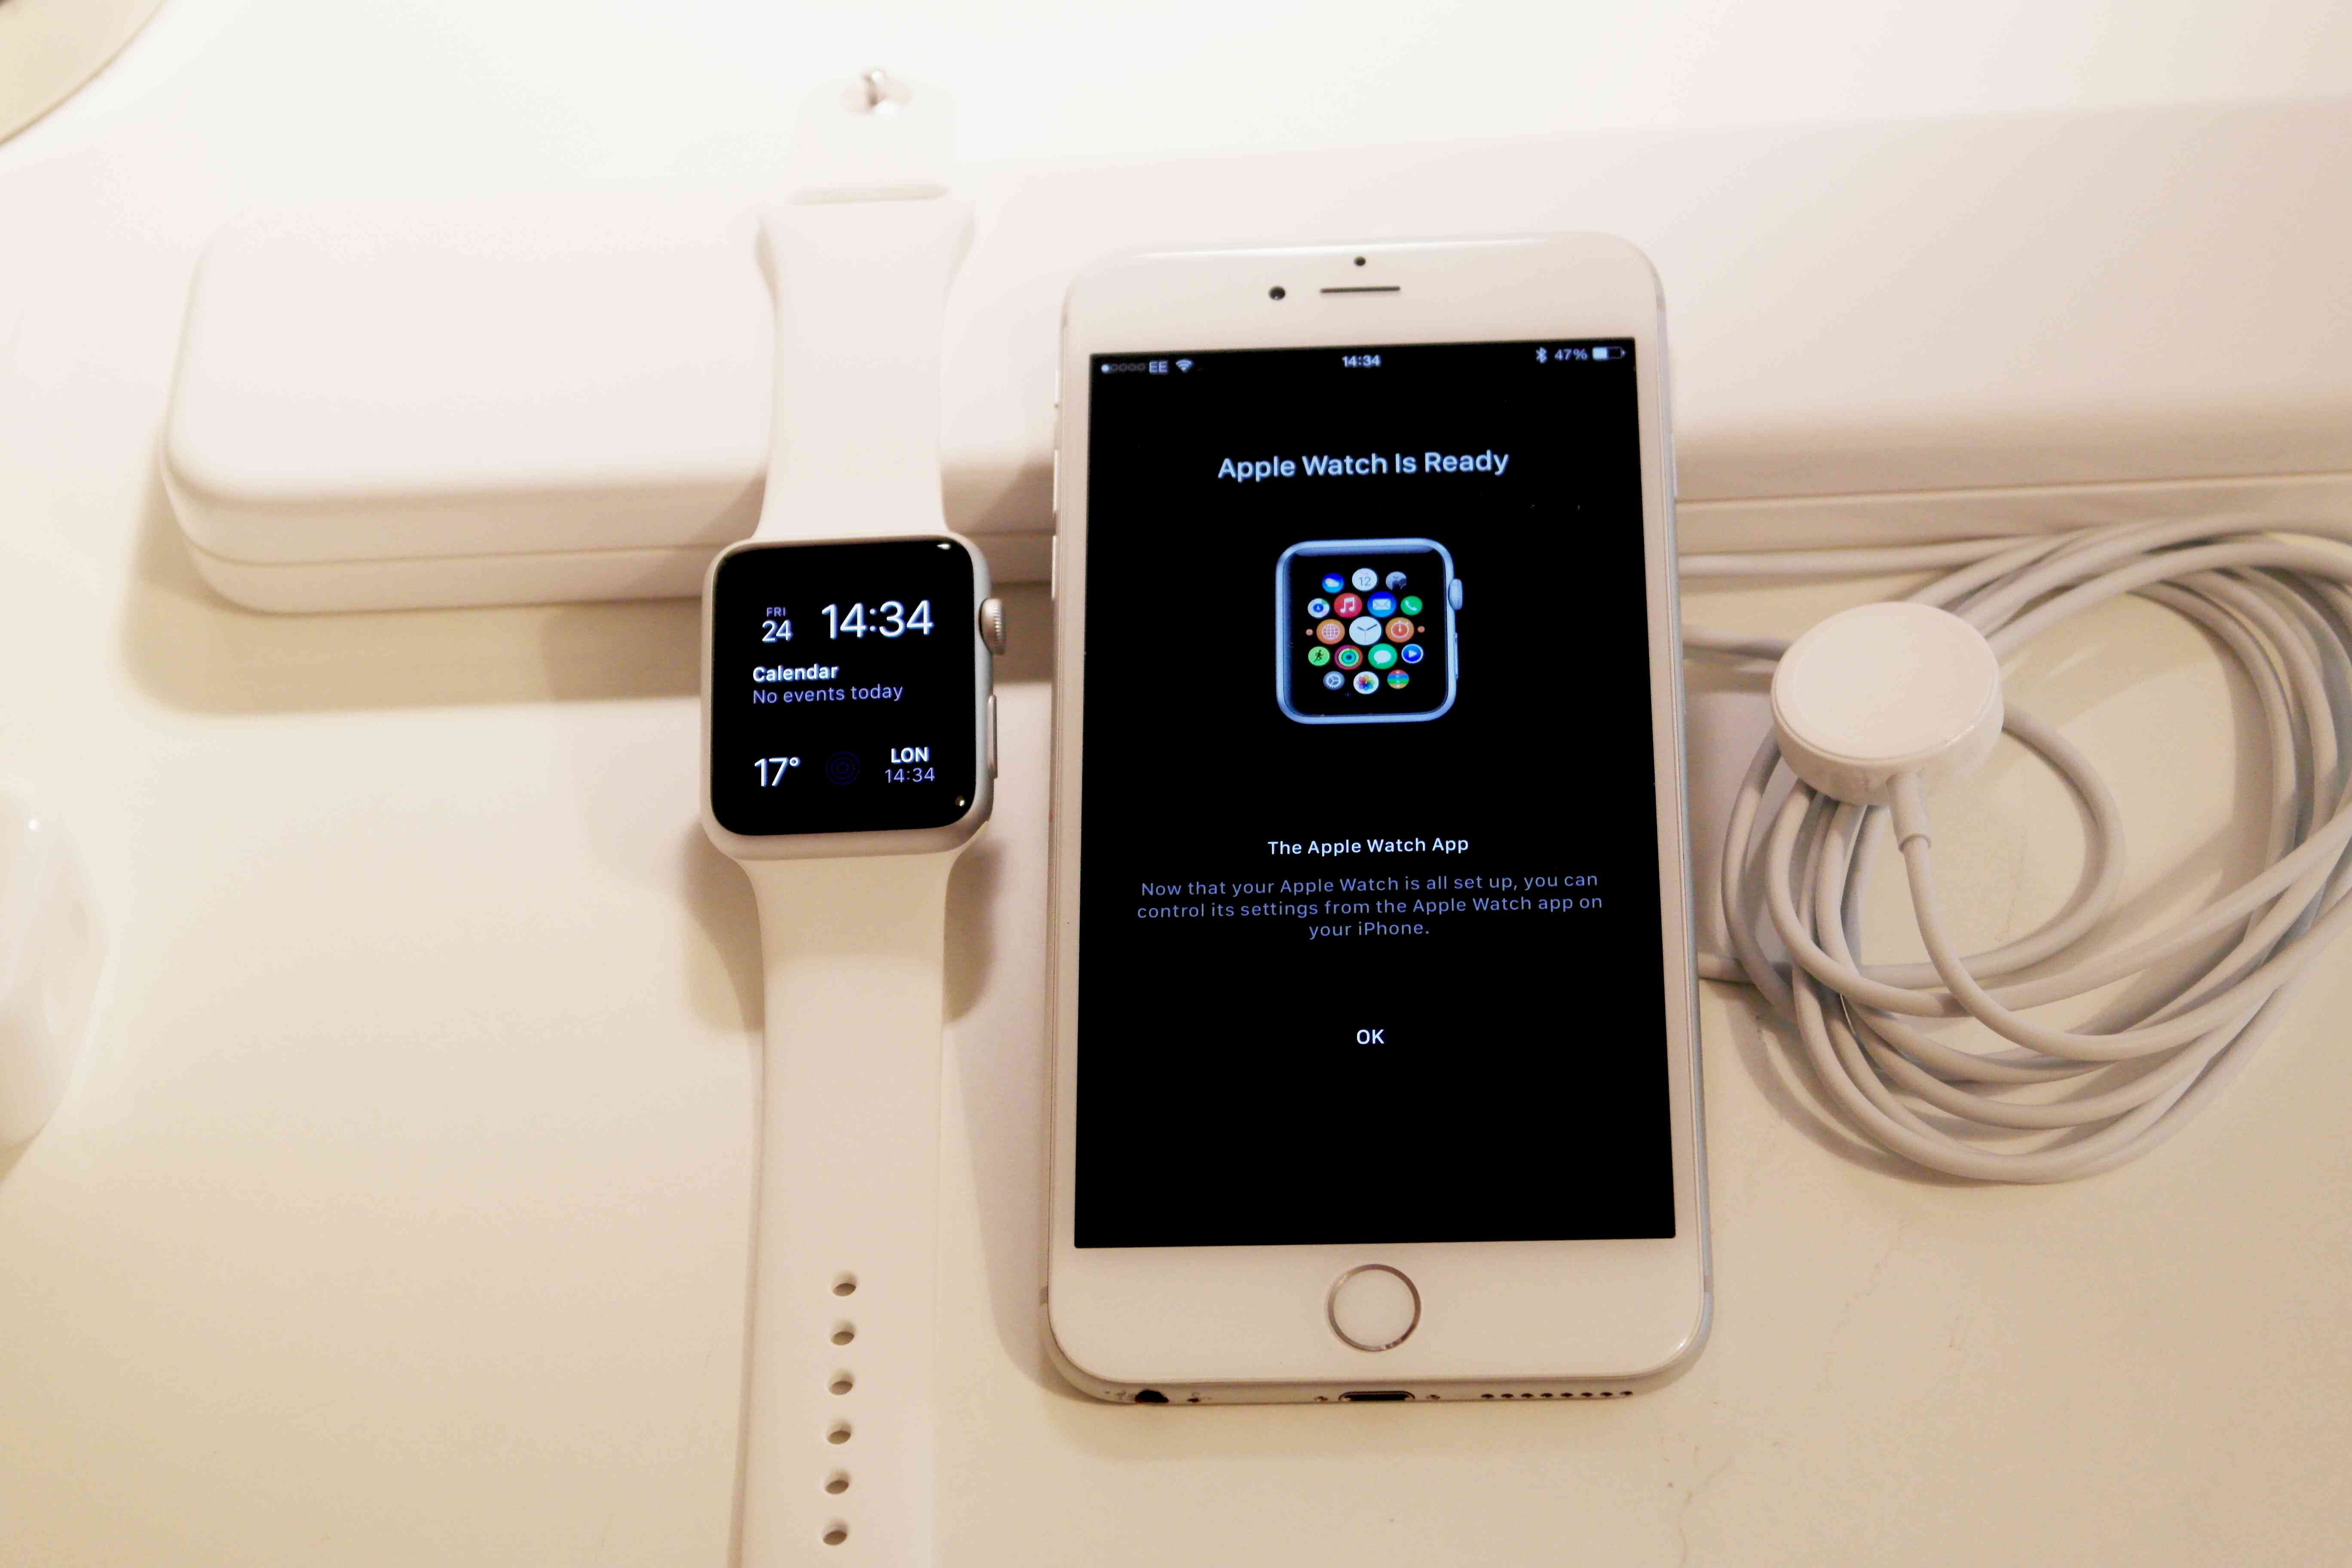 Apple Watch is Ready message on iPhone next to Apple Watch